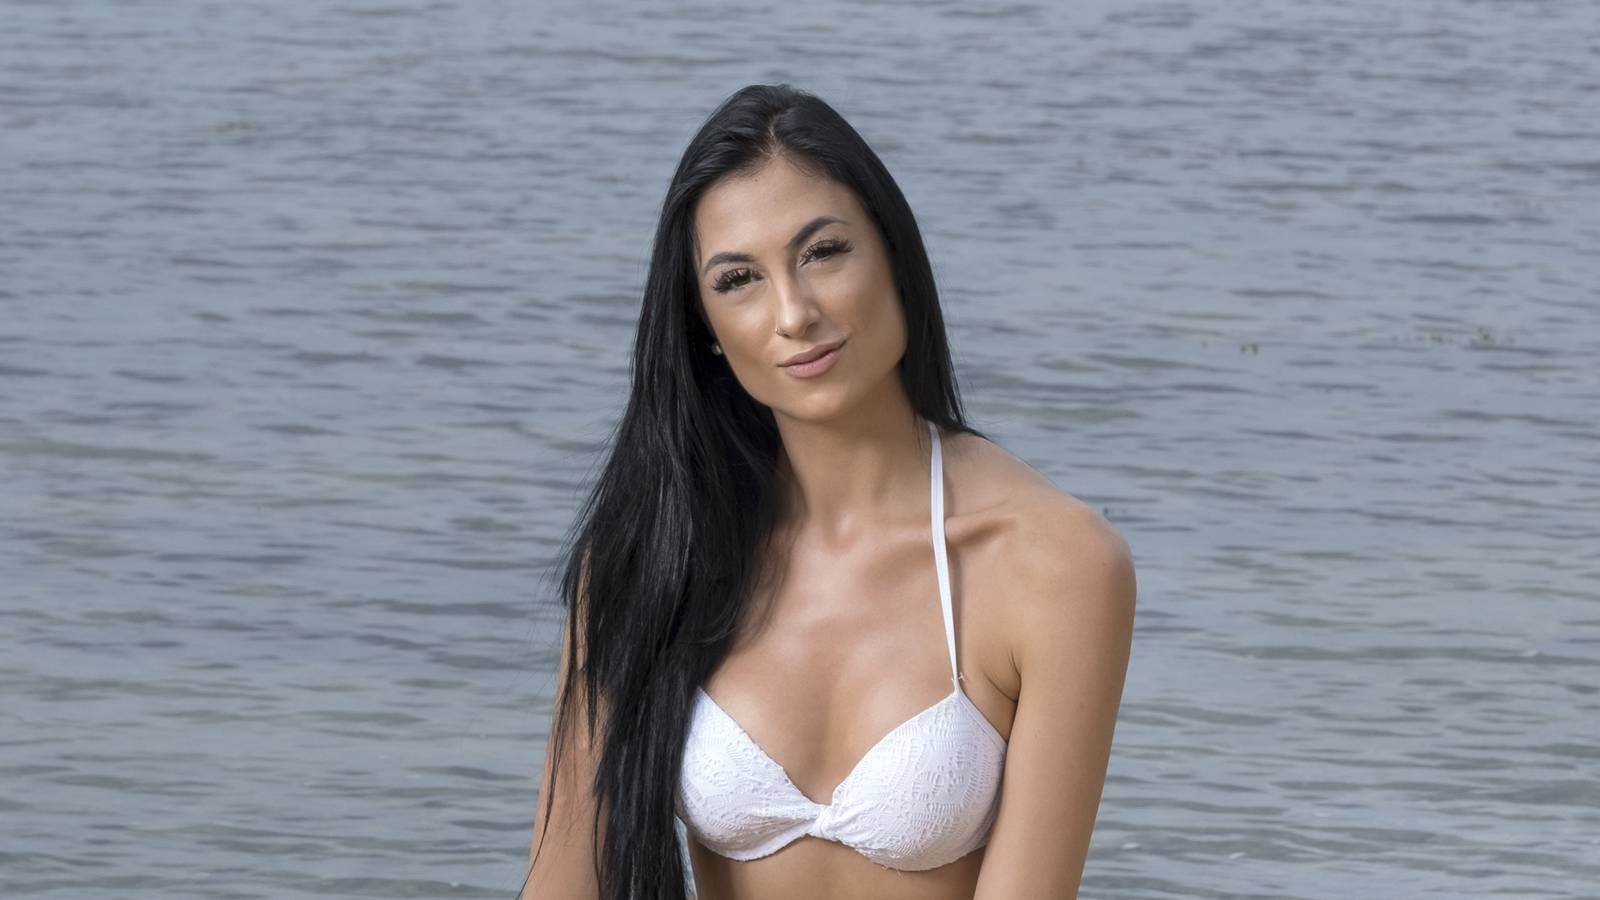 Bachelor-Kandidatin Selina aus dem Kanton Thurgau will Model werden. (© FM1Today)